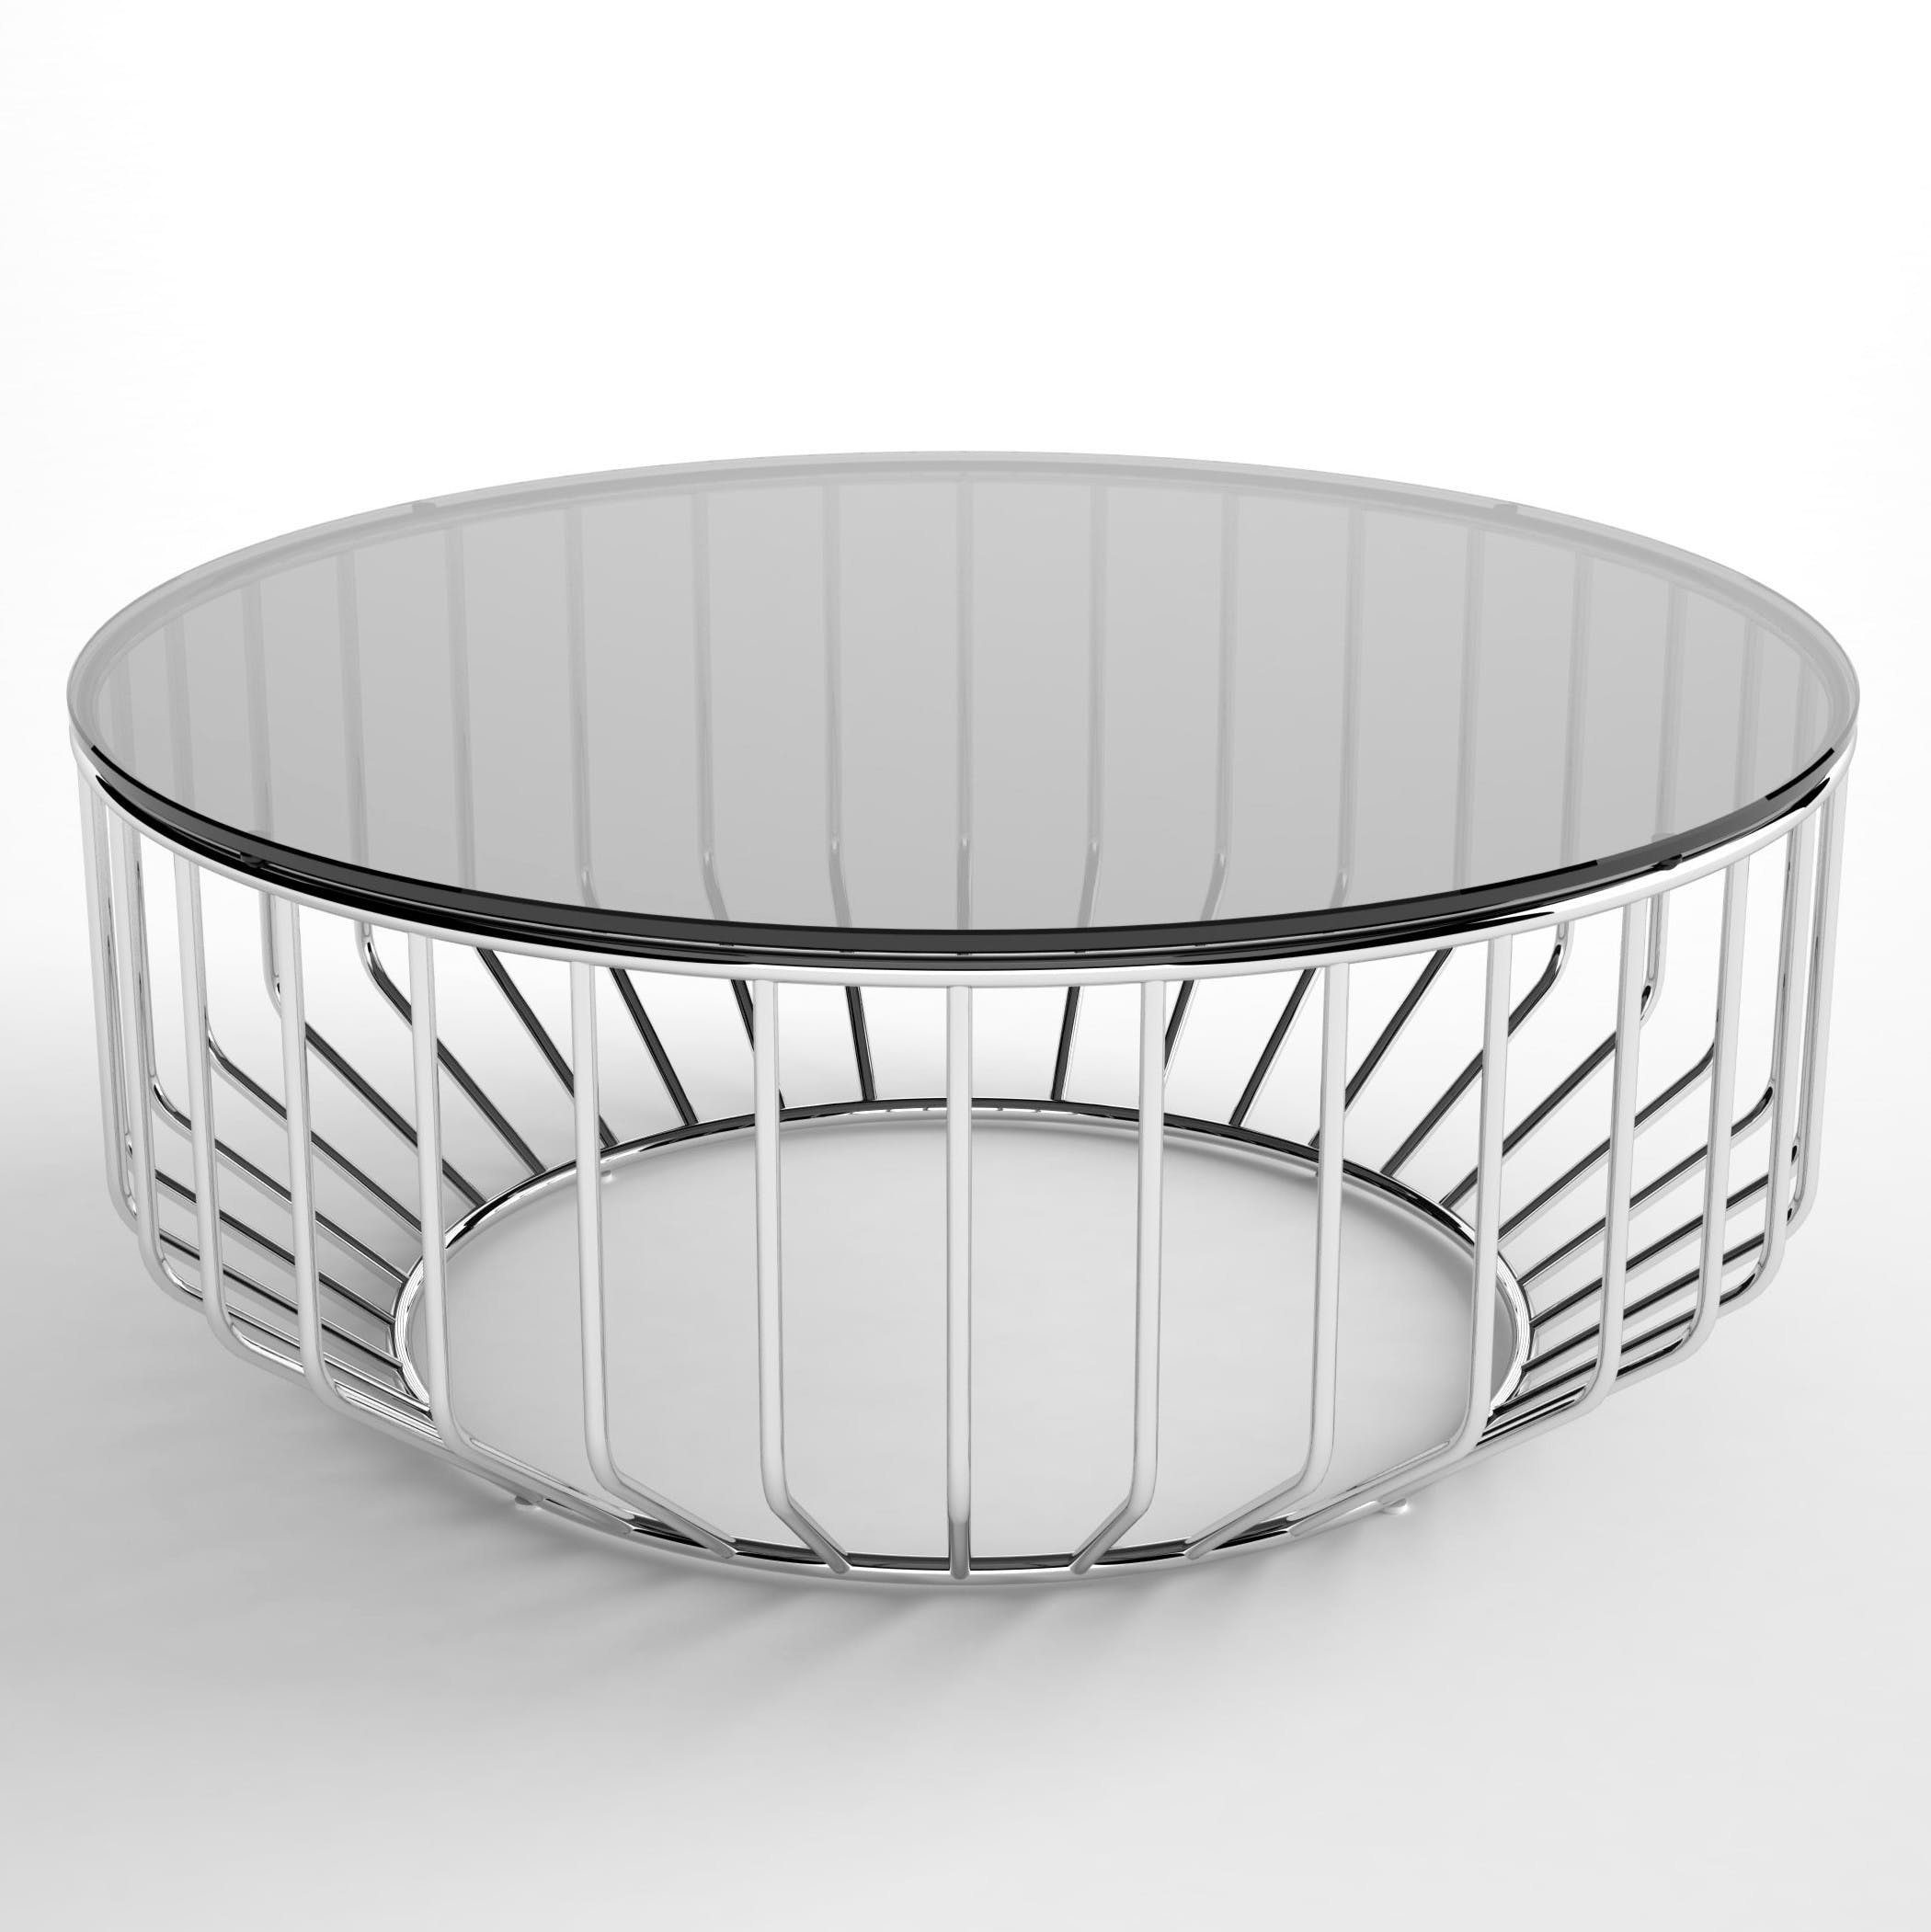 Phase Design Wired 32 Coffee Table Polished Chrome Smoked Glass Hi Res 2 180924 145139